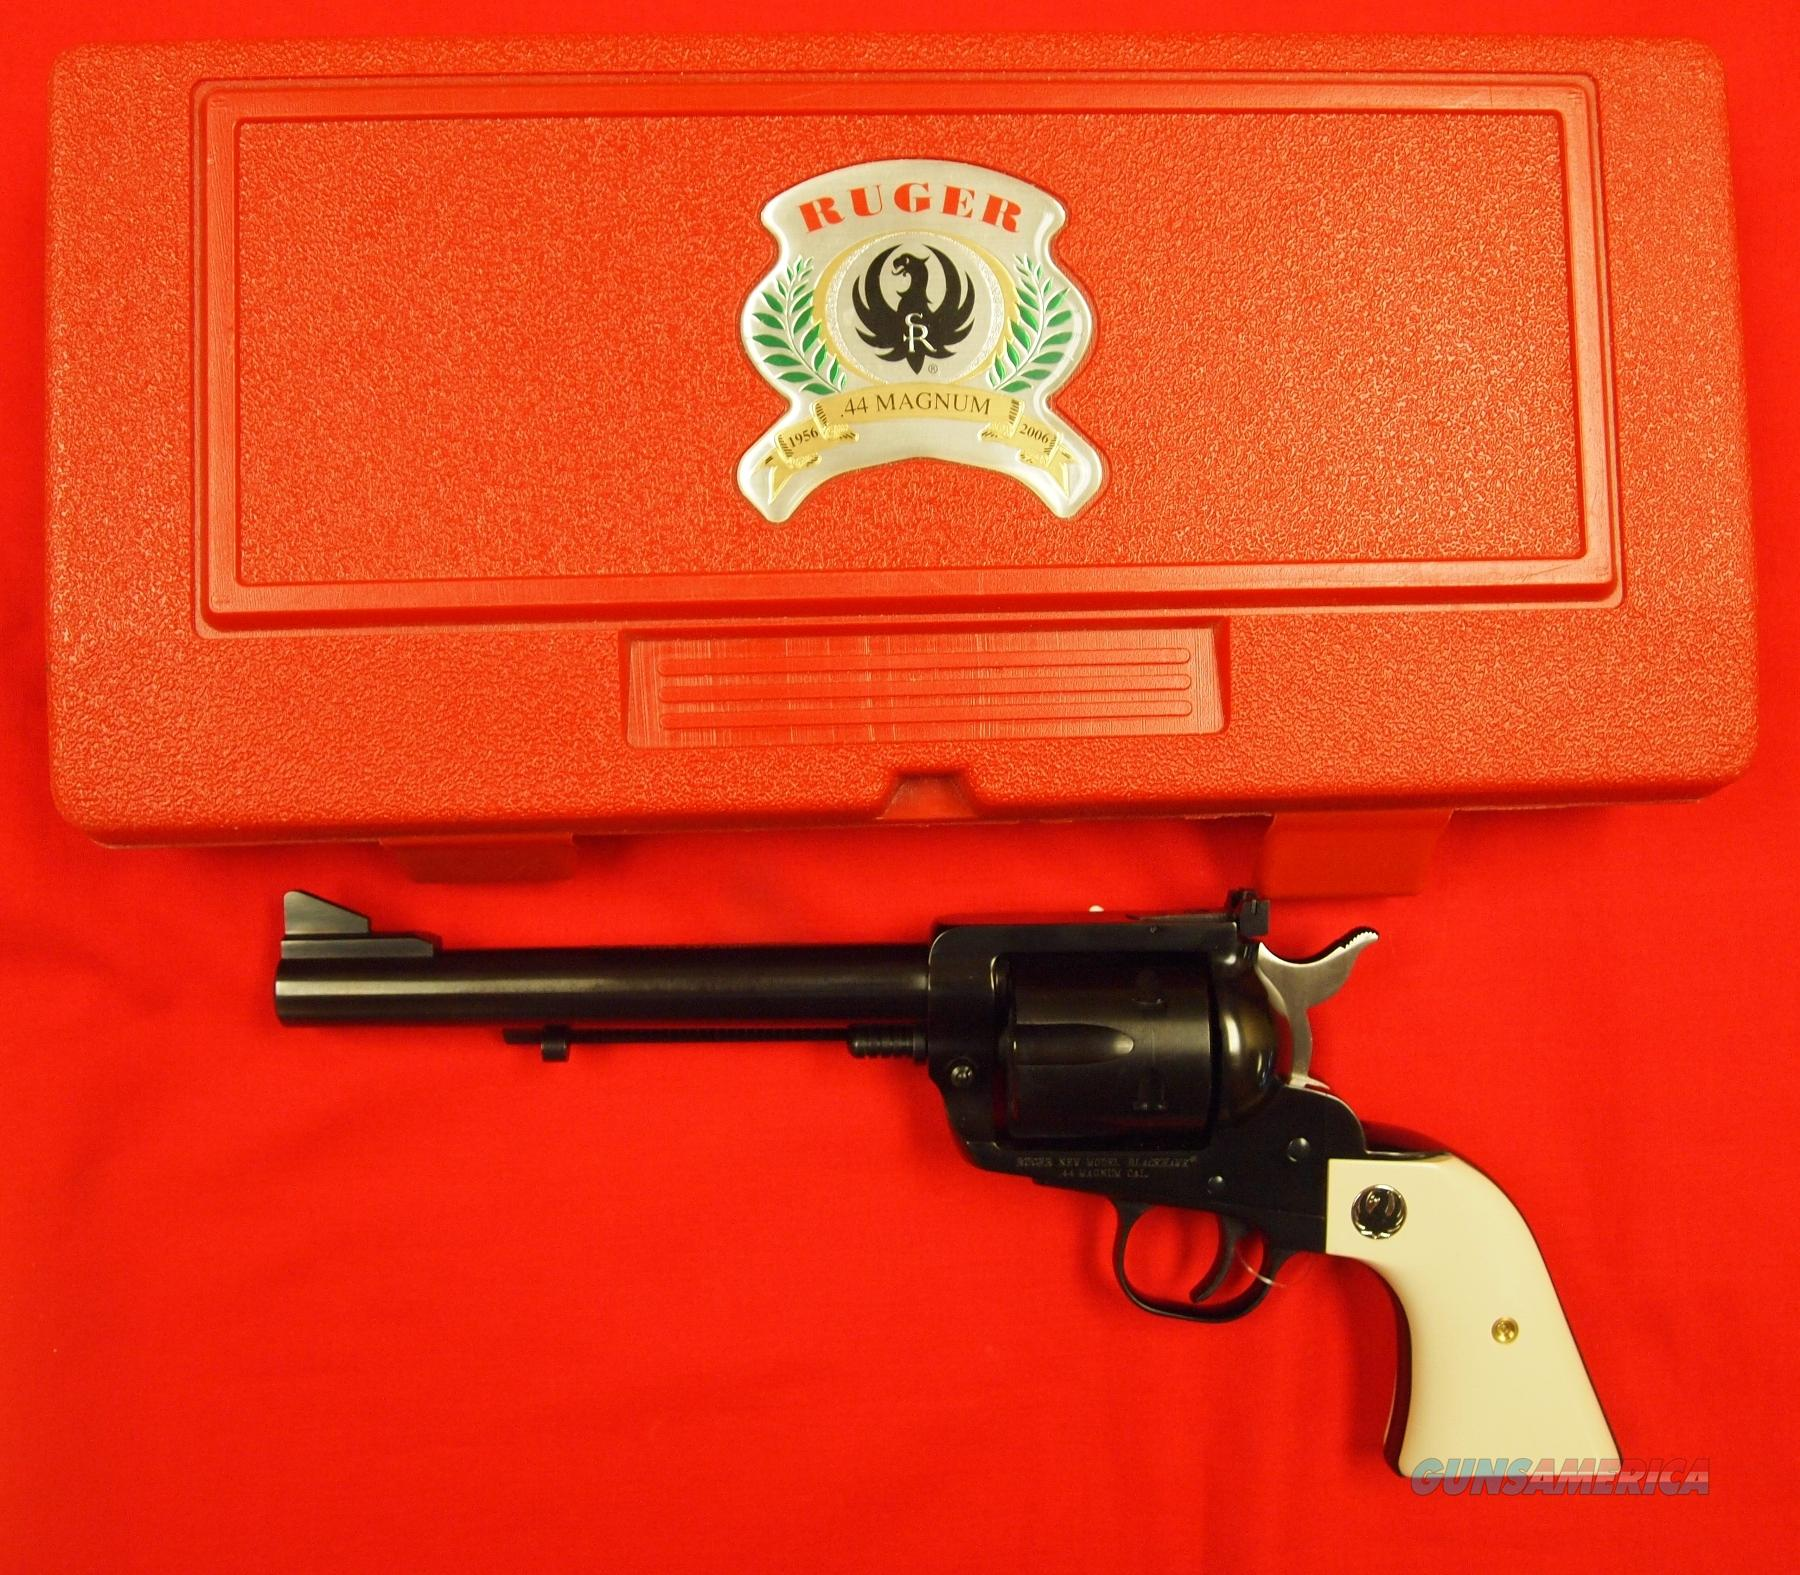 Ruger 50th Anniversary .44 Magnum New Model Blackhawk  Guns > Pistols > Ruger Single Action Revolvers > Blackhawk Type